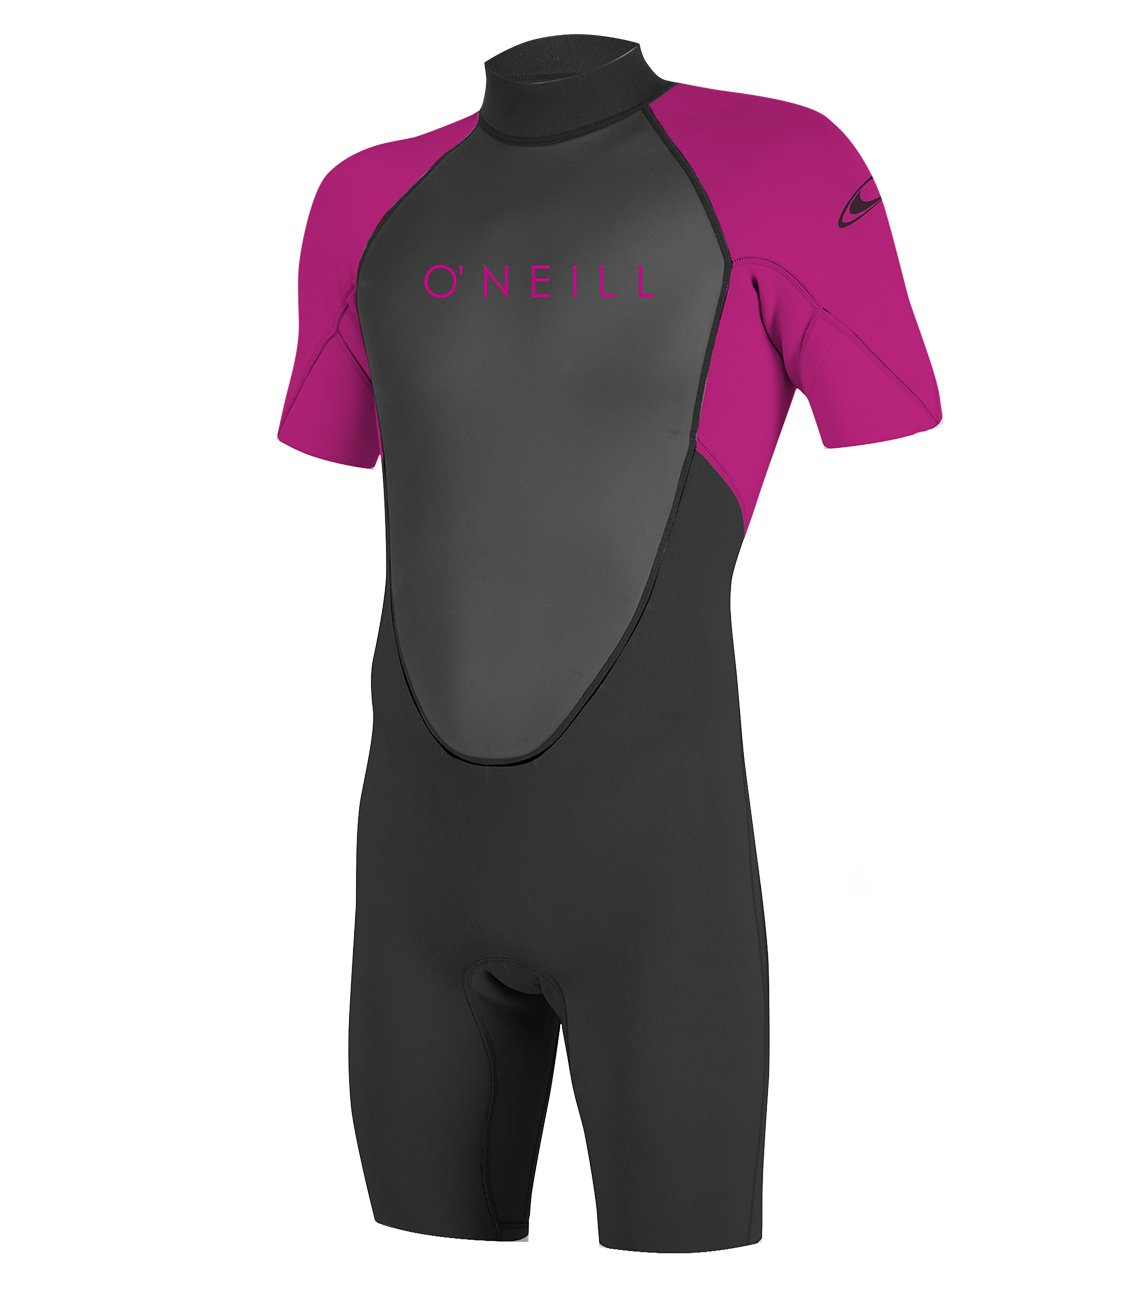 O'Neill Youth Reactor-2 2mm Back Zip Short Sleeve Spring Wetsuit, Black/Berry, 12 by O'Neill Wetsuits